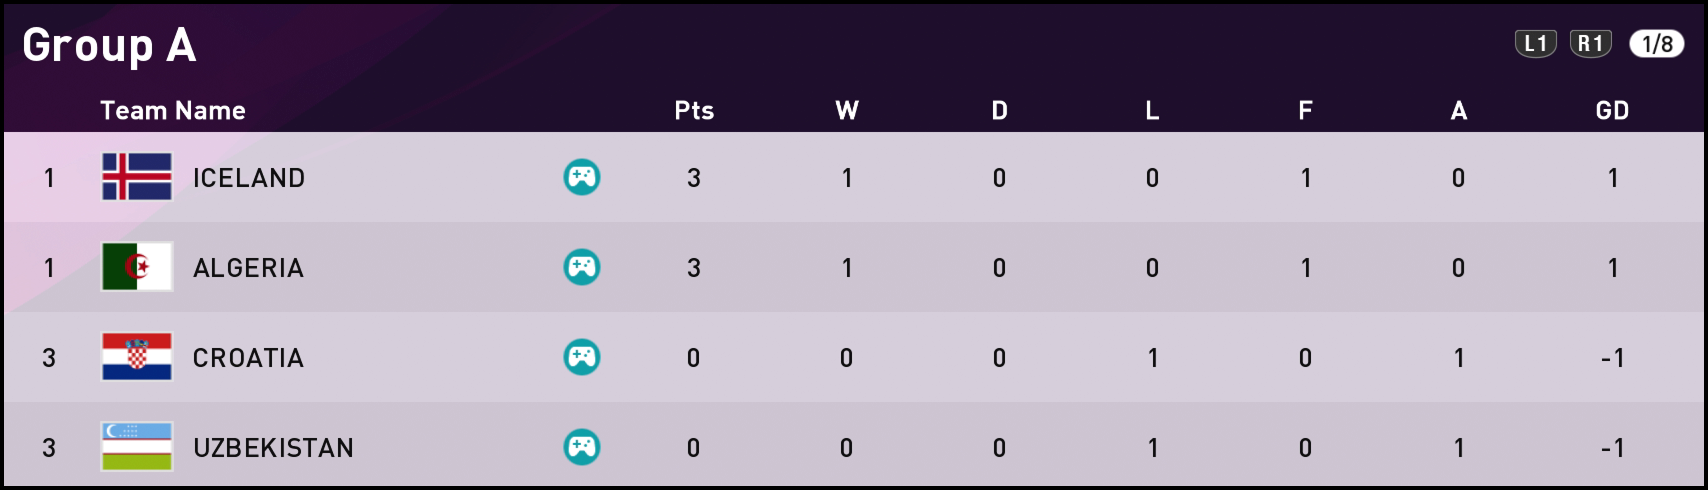 FTWC20-Group-A-1-Game.png